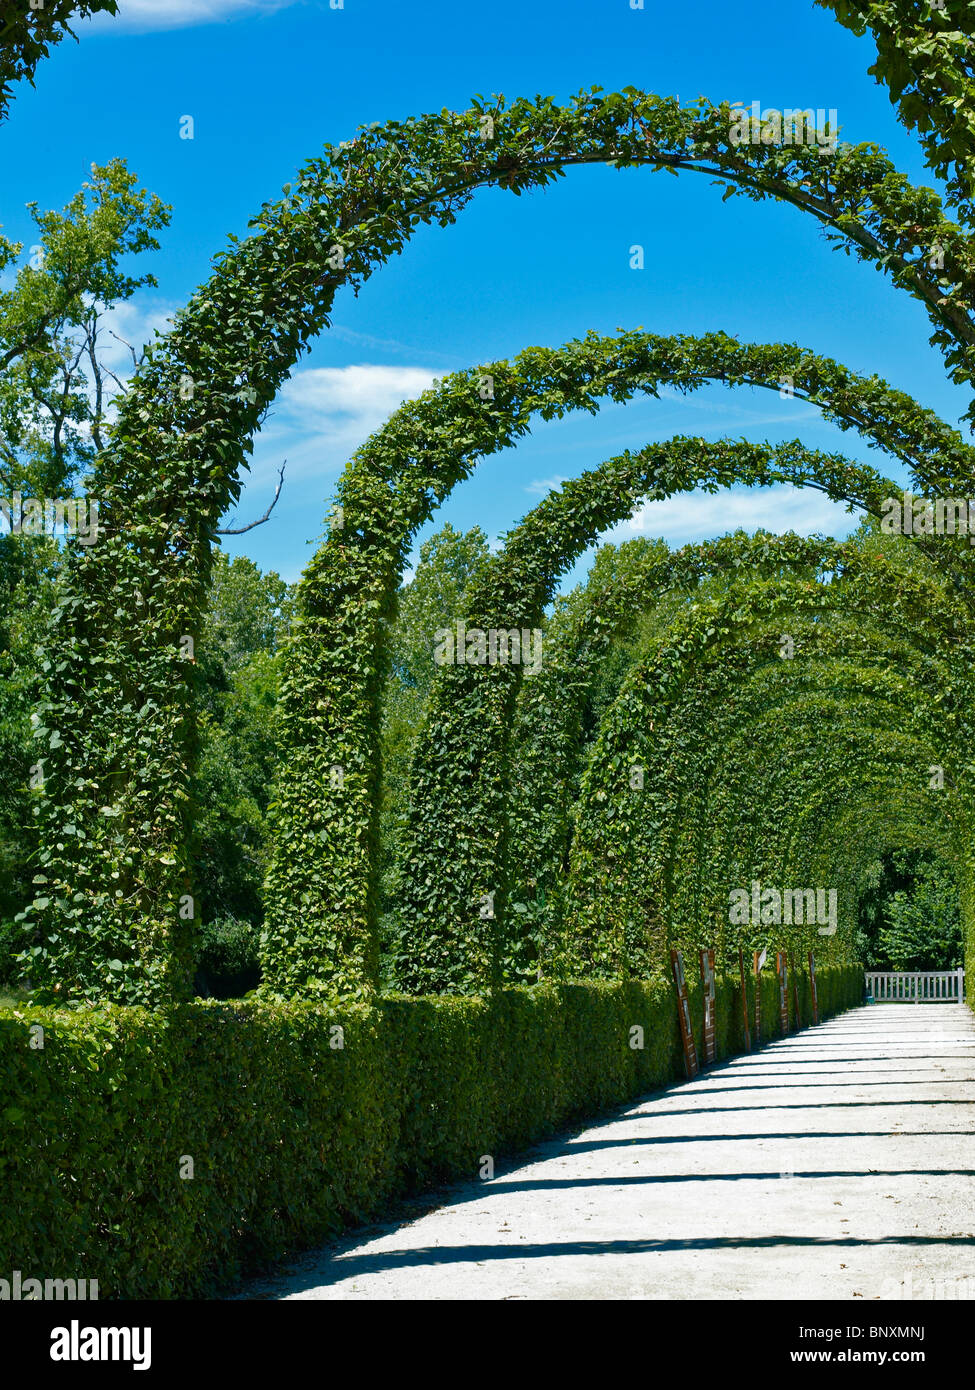 A view of the impressive clipped Hornbeams in the Renaissance Garden at Chamerolles - Stock Image